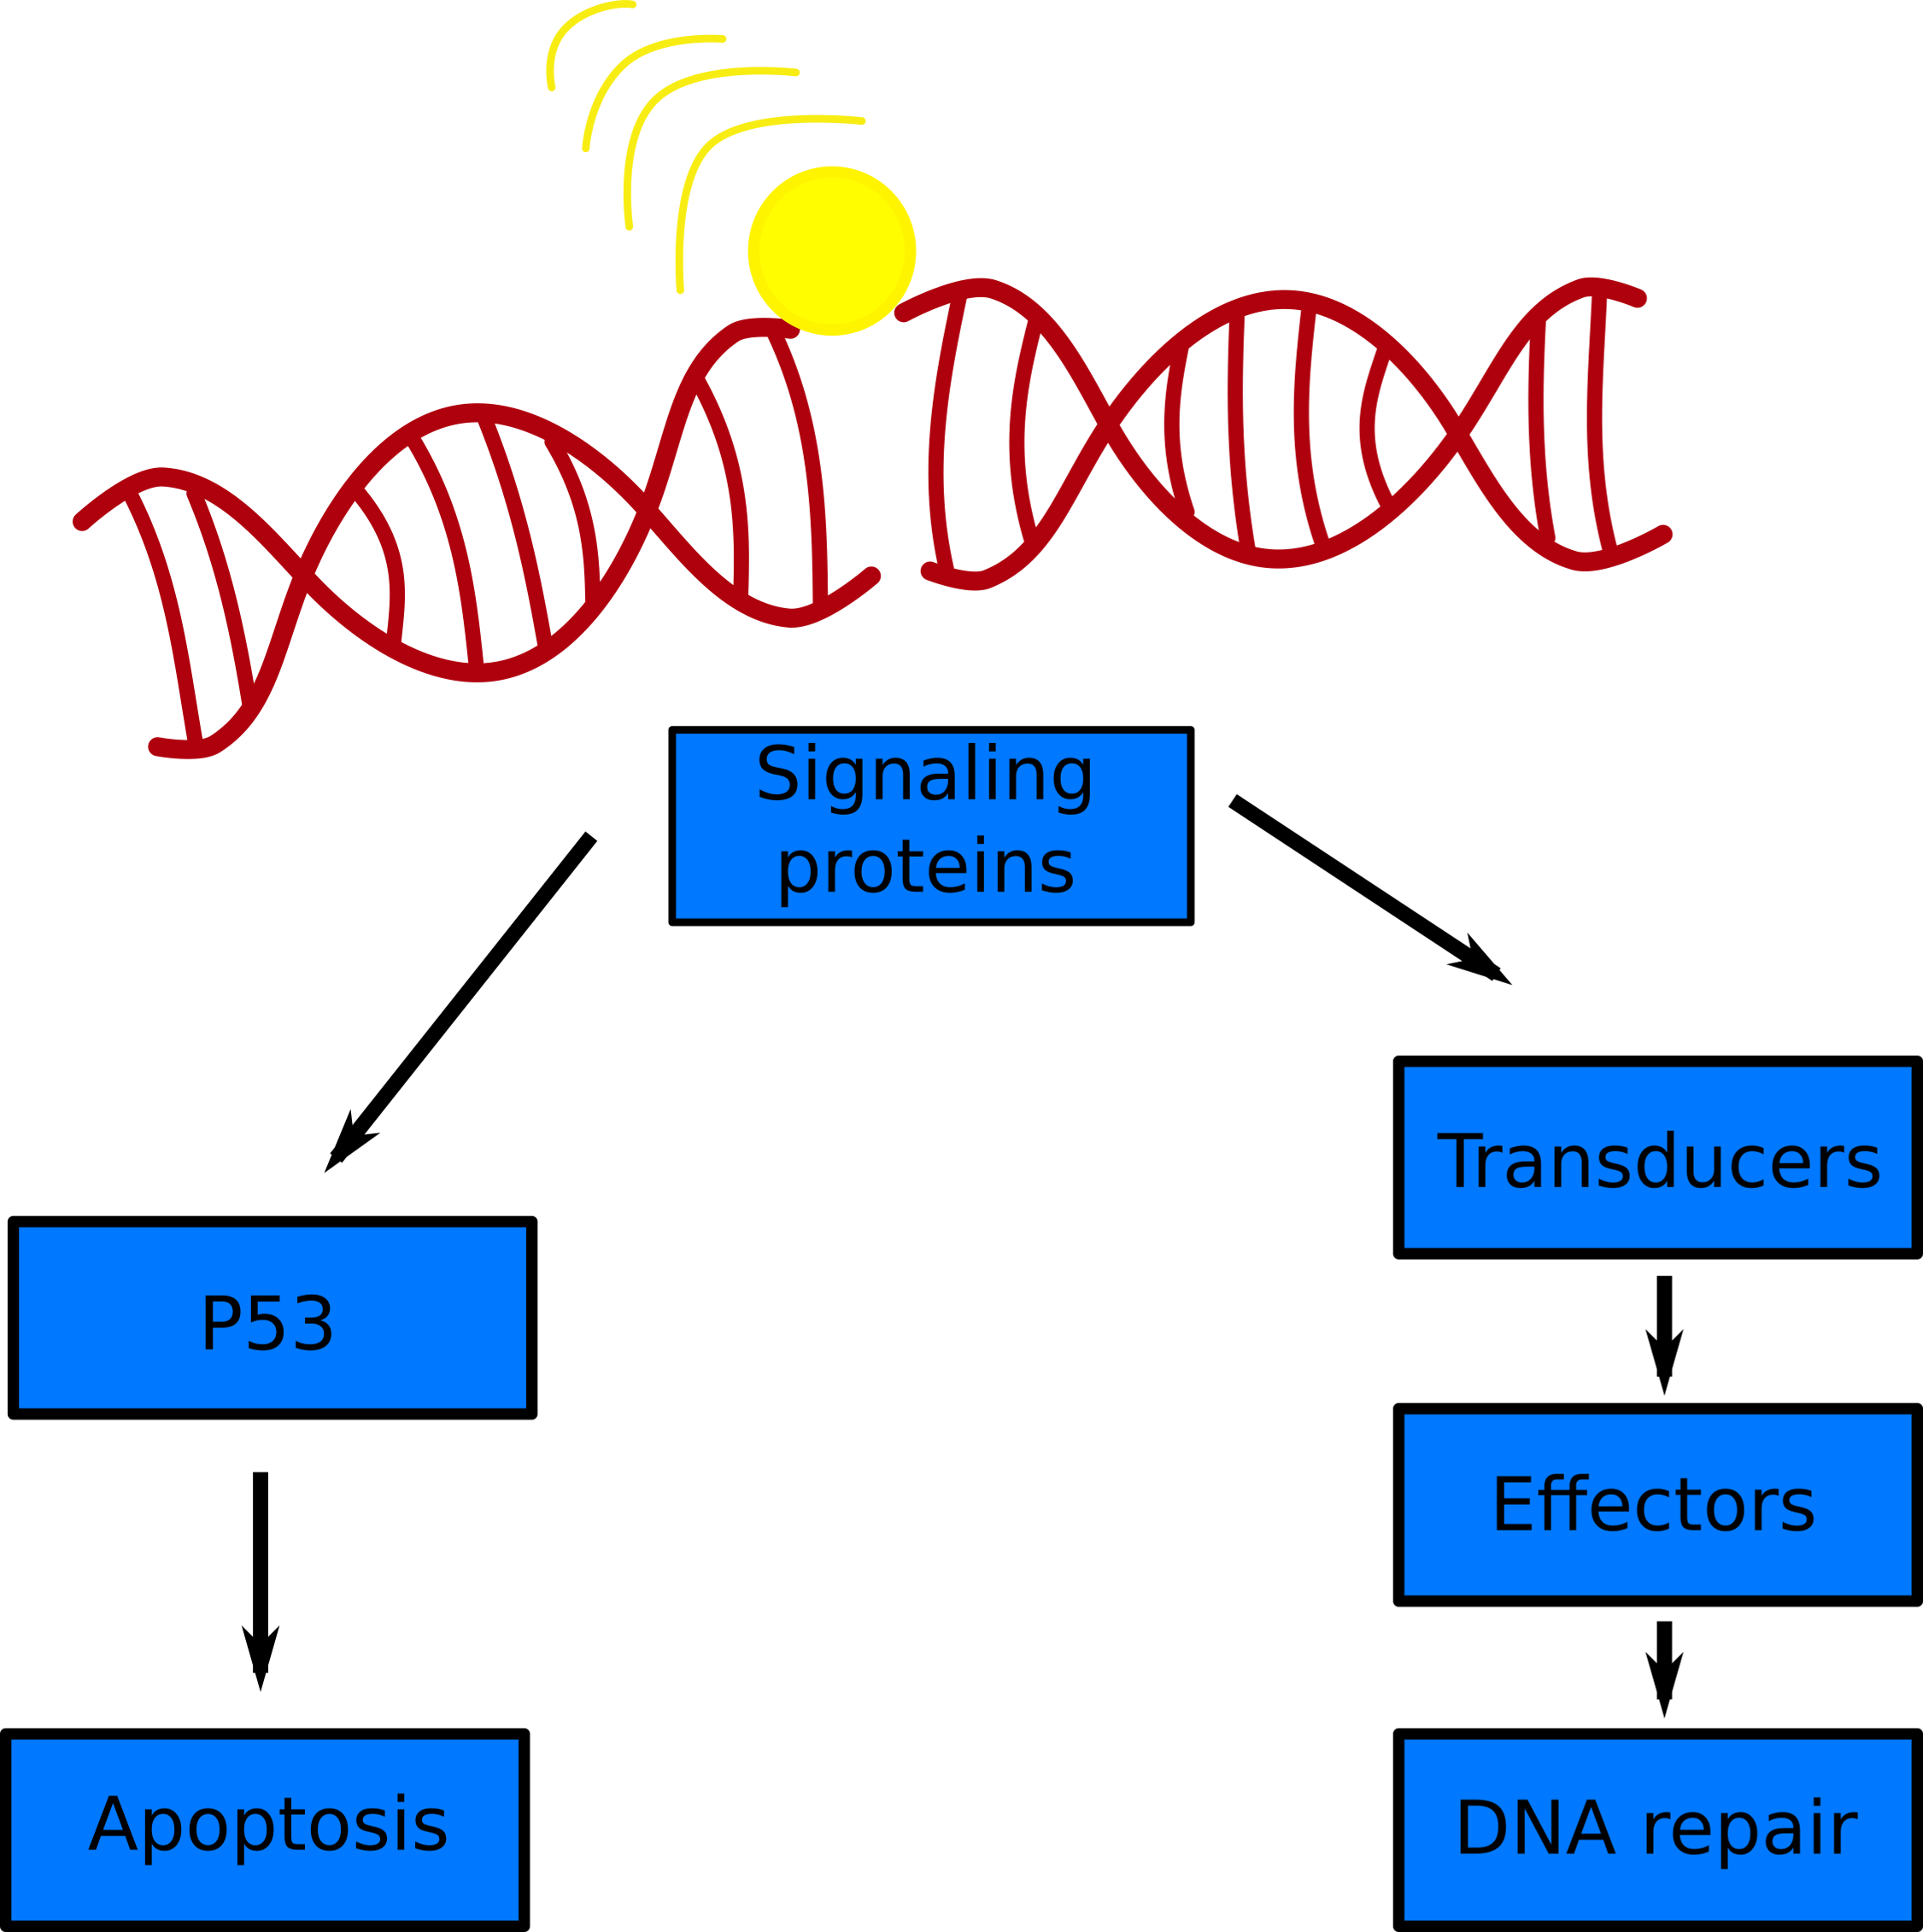 A simple schematic of the DNA damage response to a double strand break.